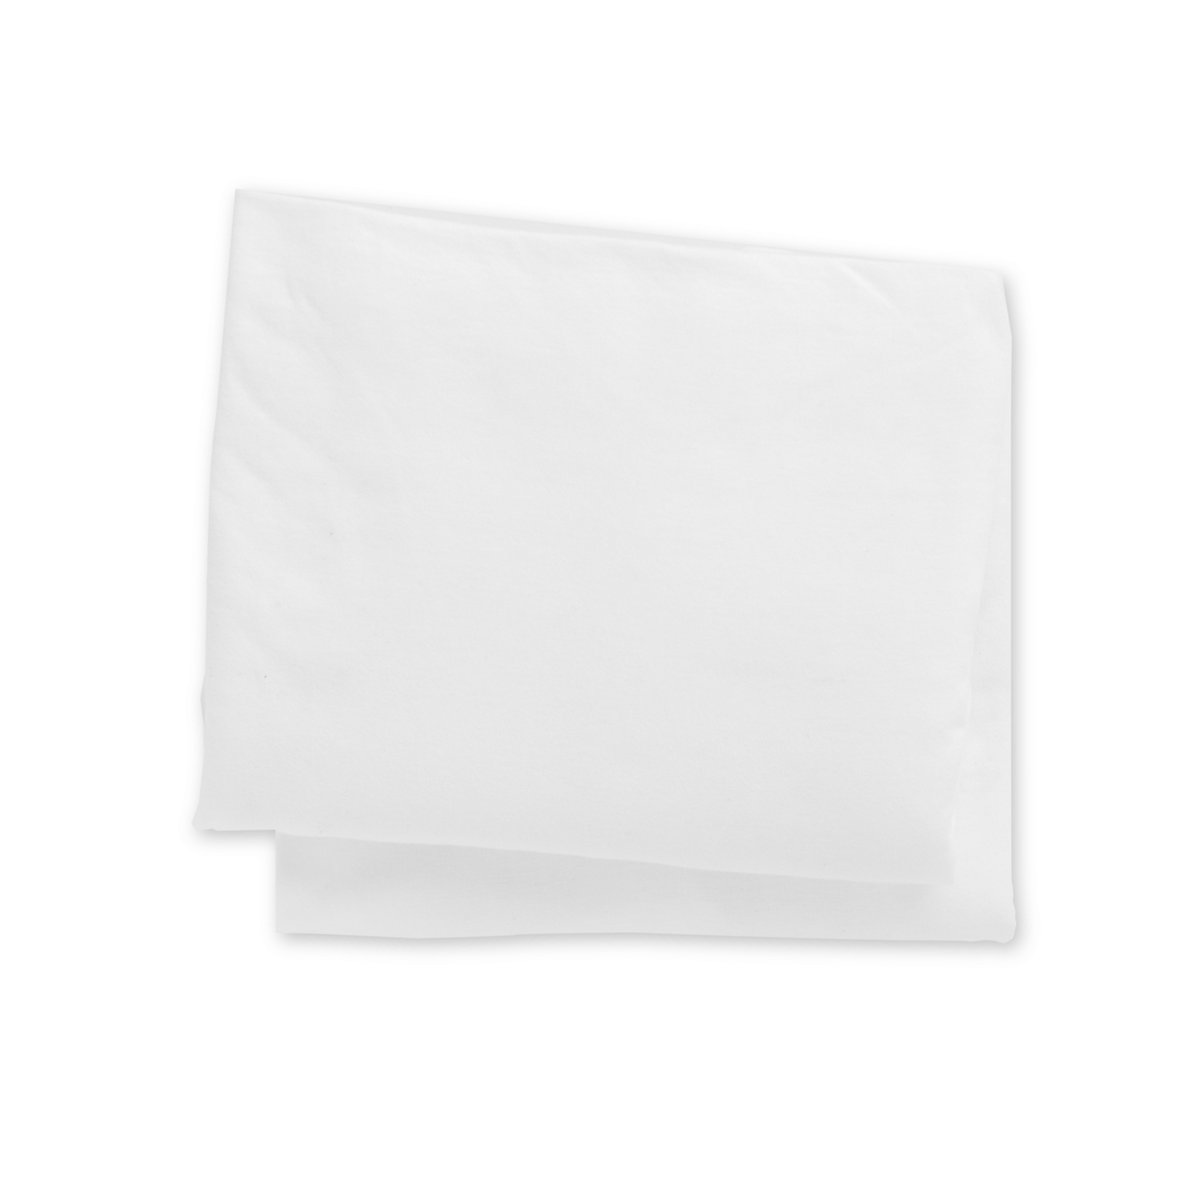 'Mothercare Cotton Fitted Moses Basket Sheets- 2 Pack White